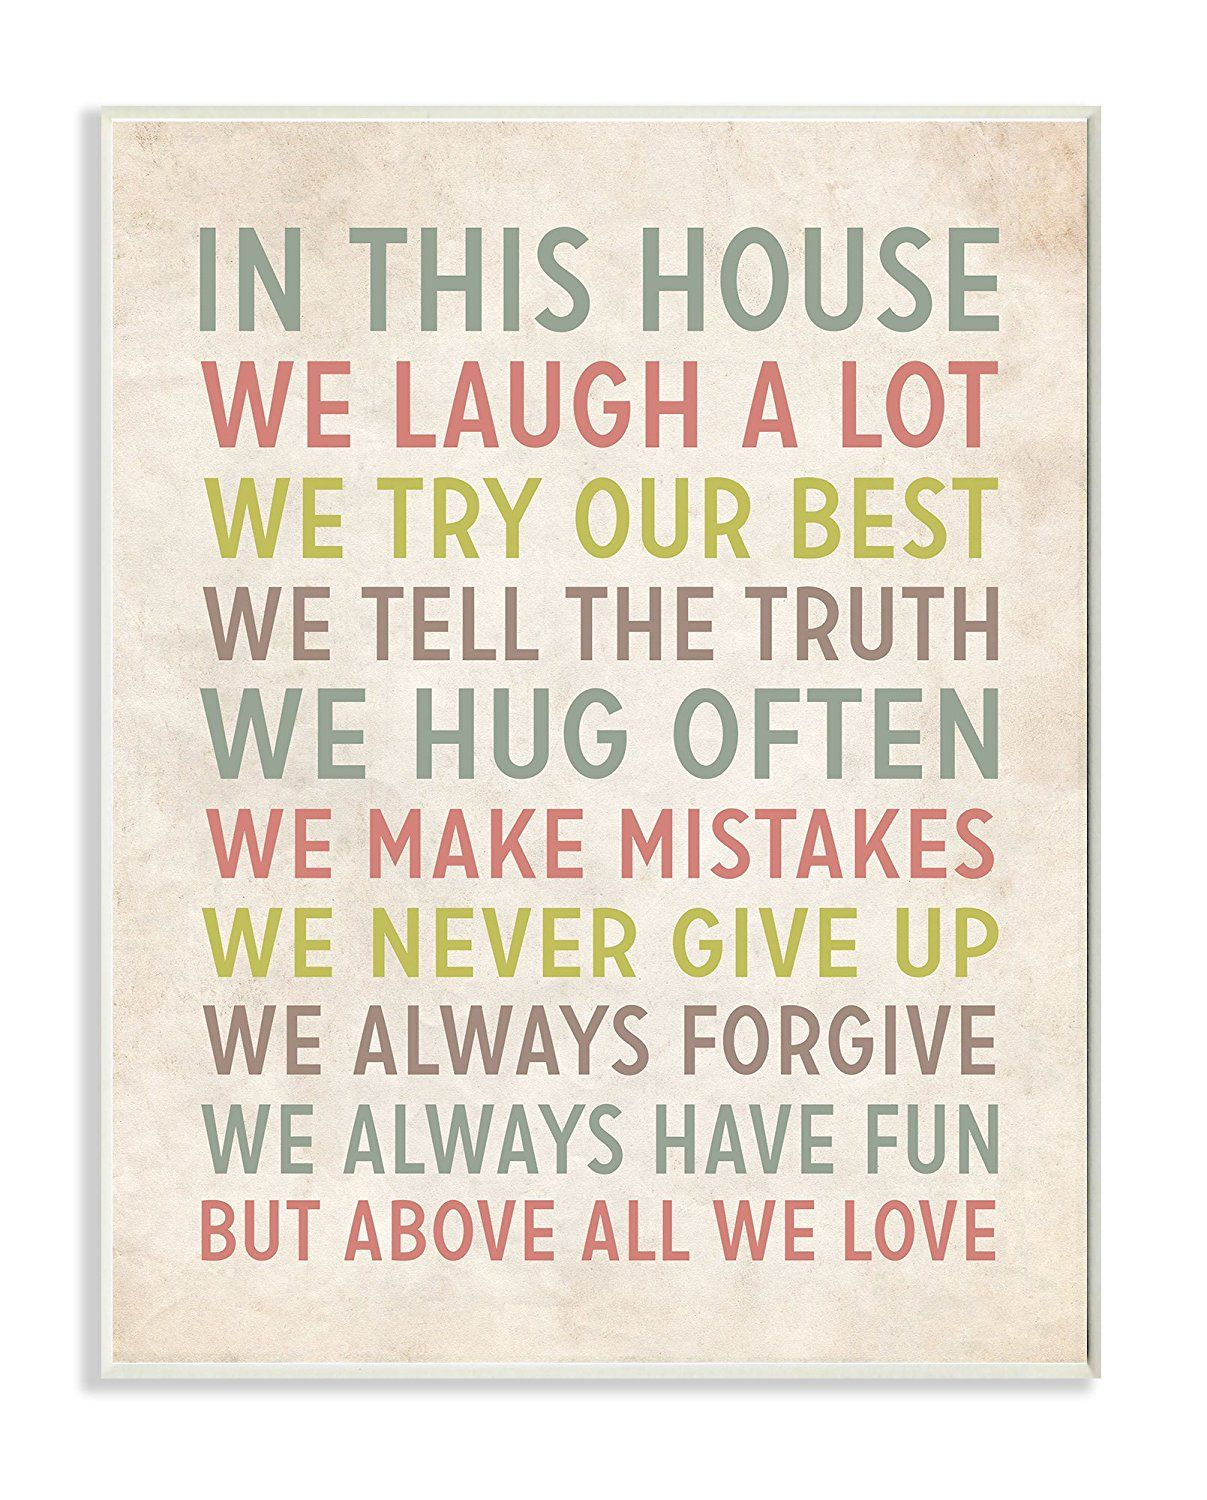 Stupell home decor in this house we inspirational art wall plaque  also rh pinterest